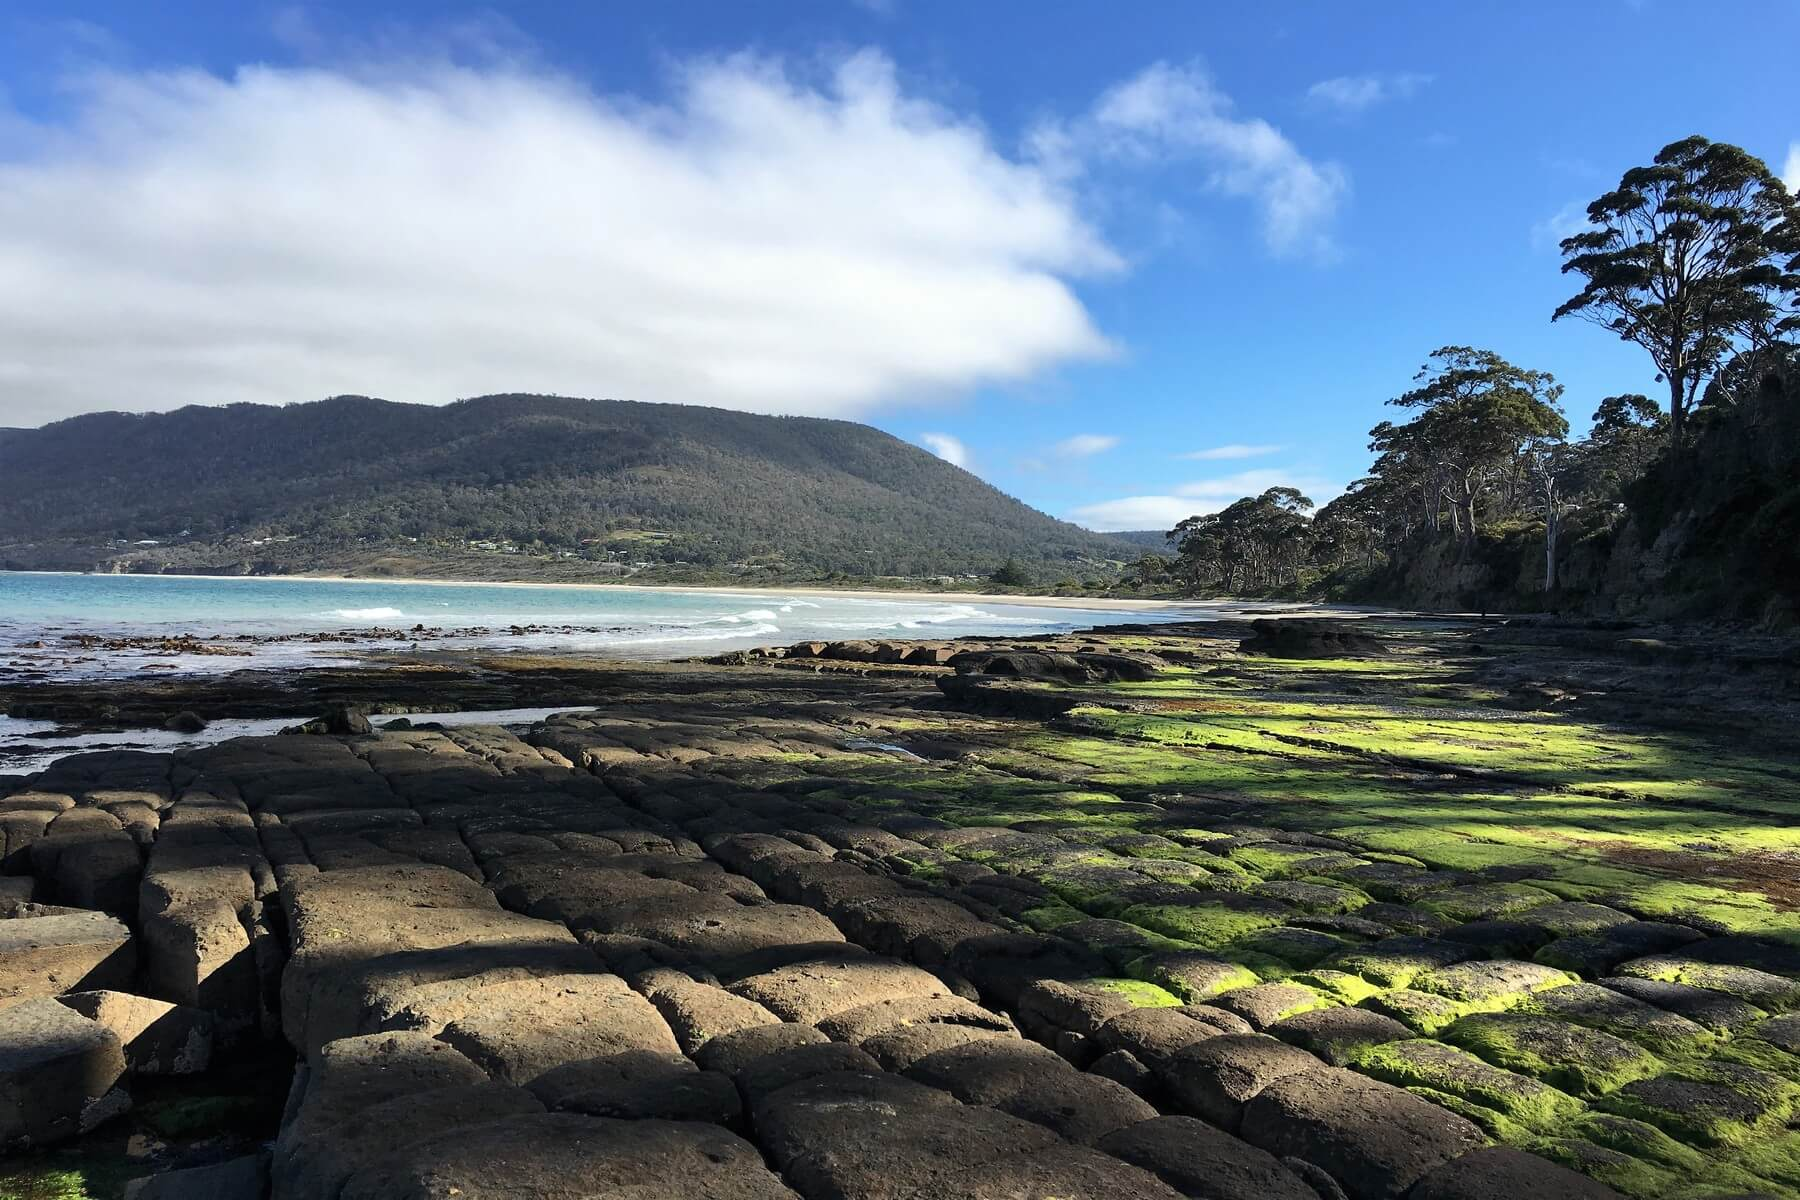 Stunning display of mother natures work with rock formation at the Tessellated Pavement